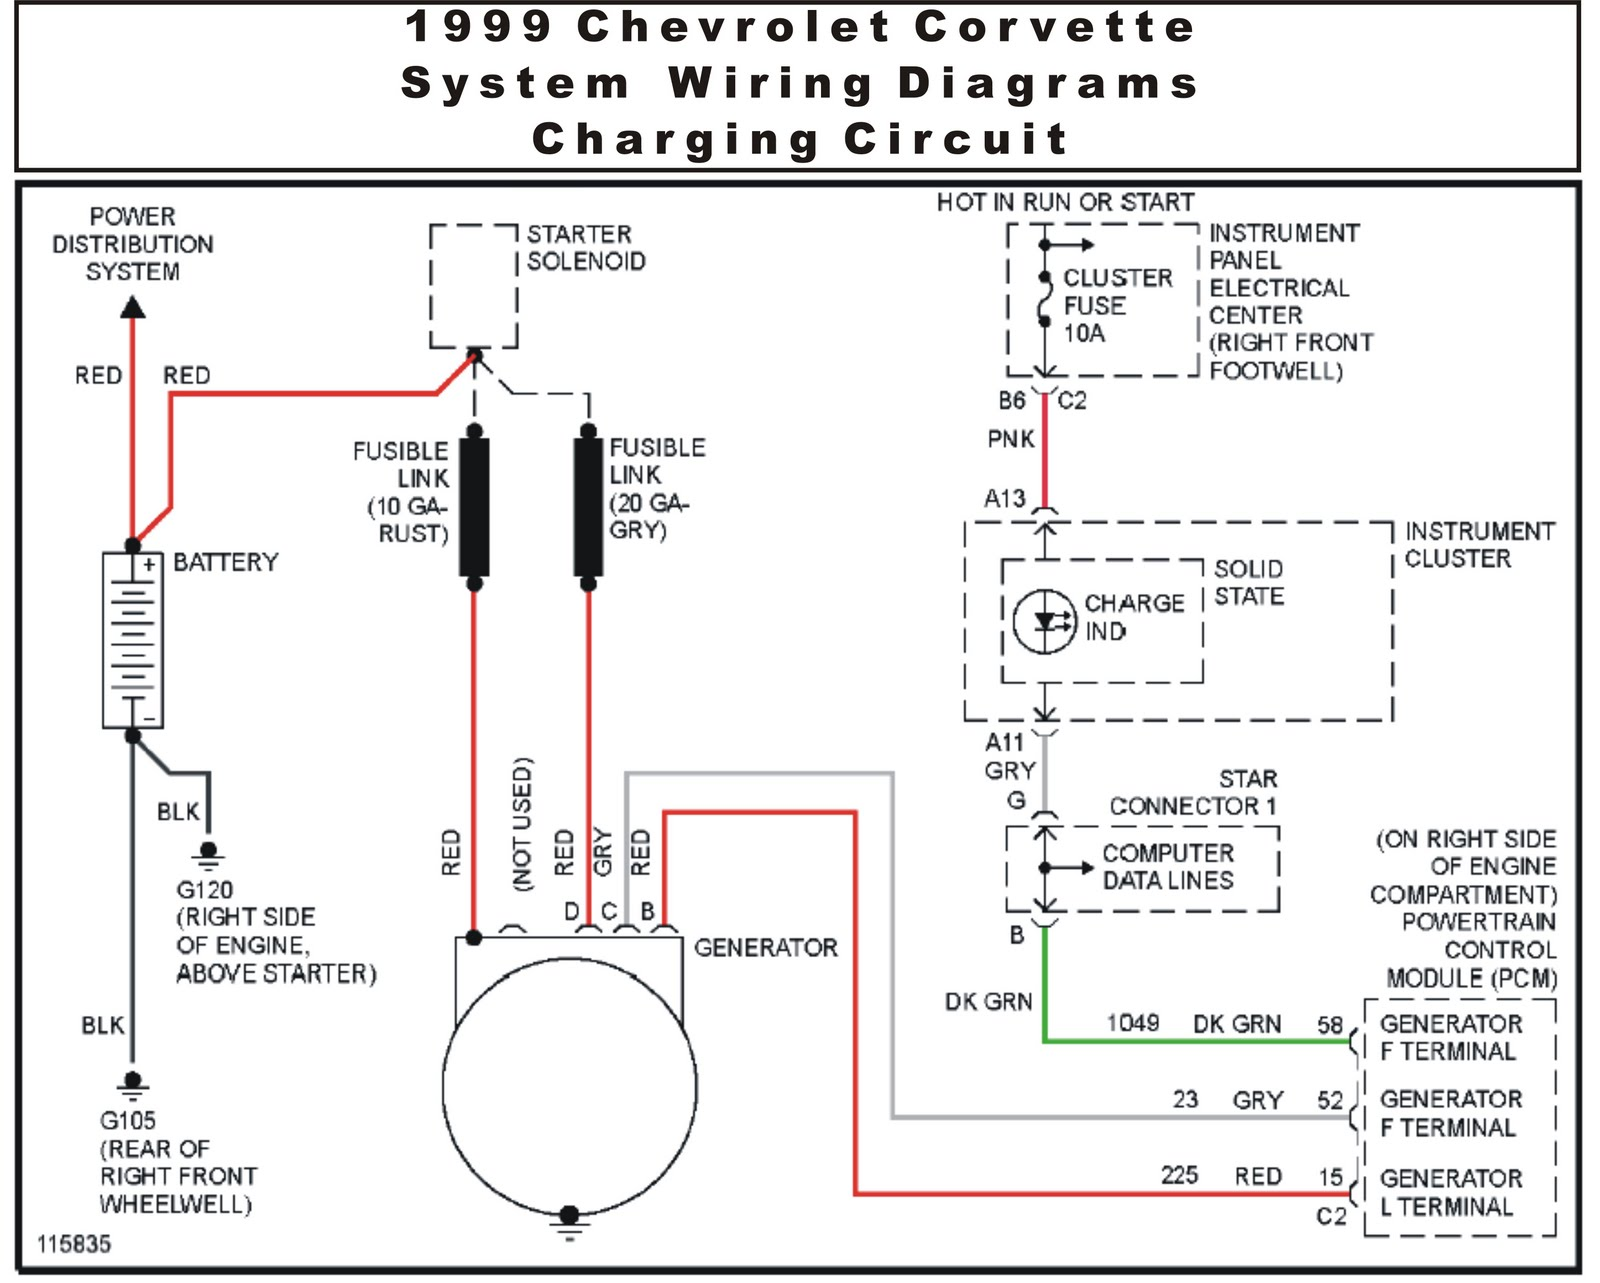 1968 camaro starter wiring diagram html with 1999 Chevrolet Corvette System Wiring on 2453751 Mid Year 63 Dash Wiring Harness Install additionally 828011 01 Trans Am Wiring Schematic together with Chevrolet Chevelle 5 7 1979 Specs And Images together with 3192954 Starter Question On A 78 A also 6ds01 Hello I Replaced 4 3l Engine 93 Searay New.